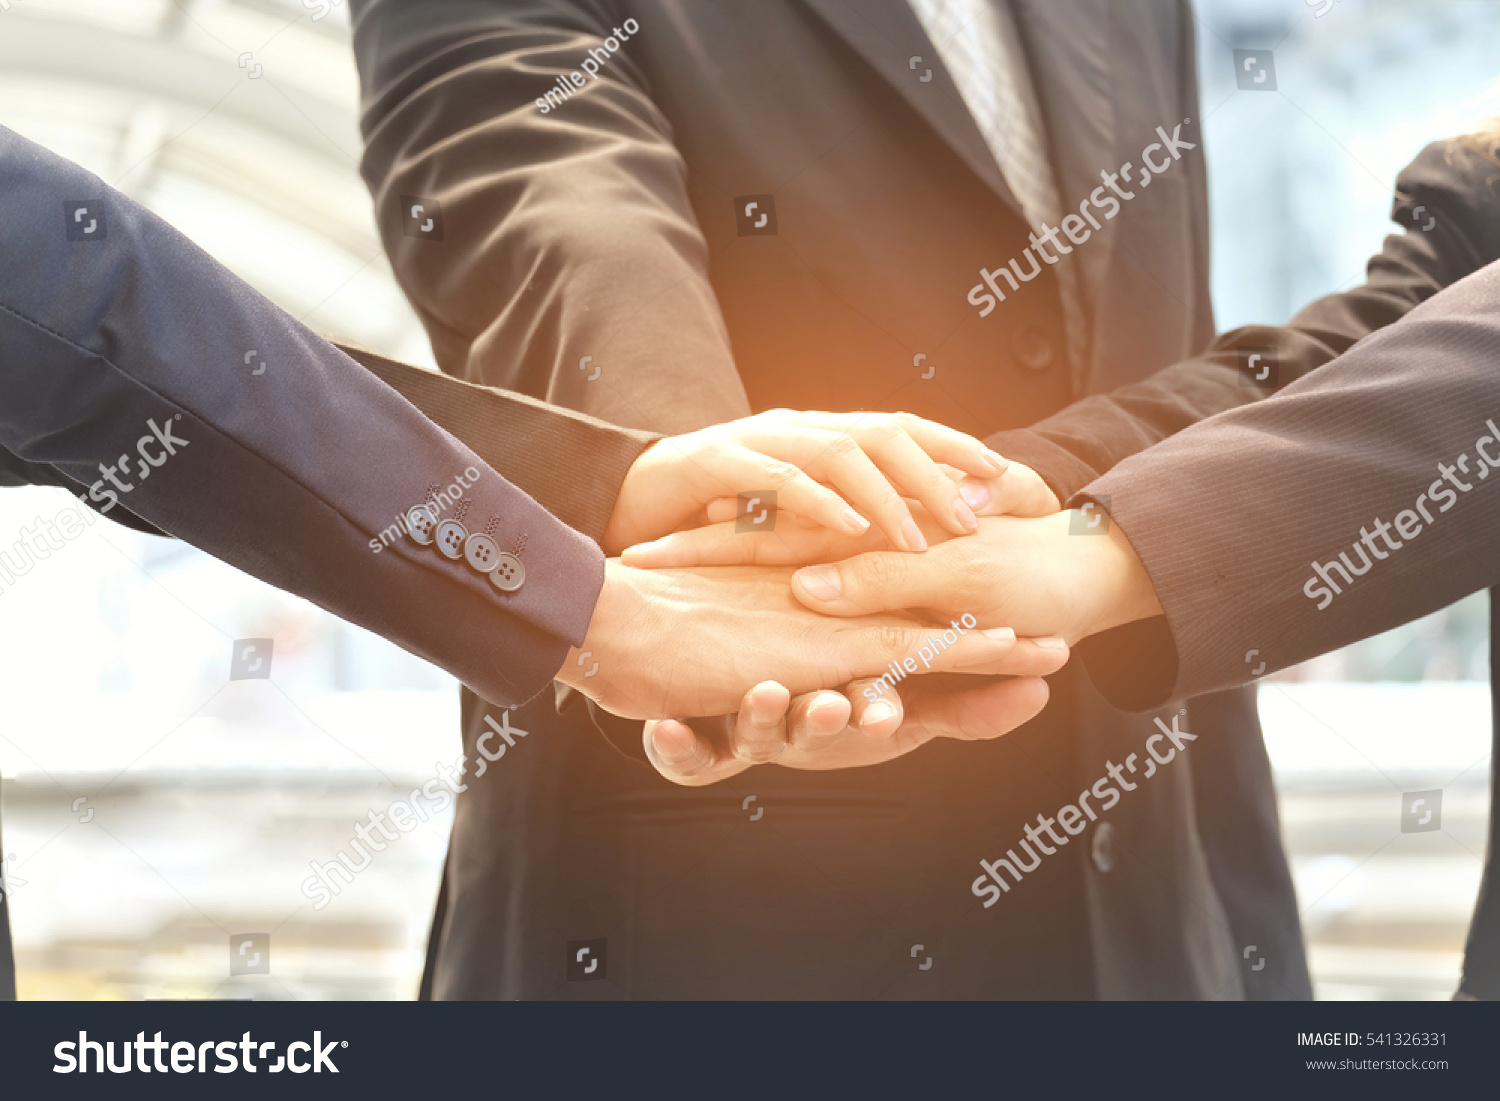 Technology Management Image: Business Concept, Business Team Hold Hands Together Stock